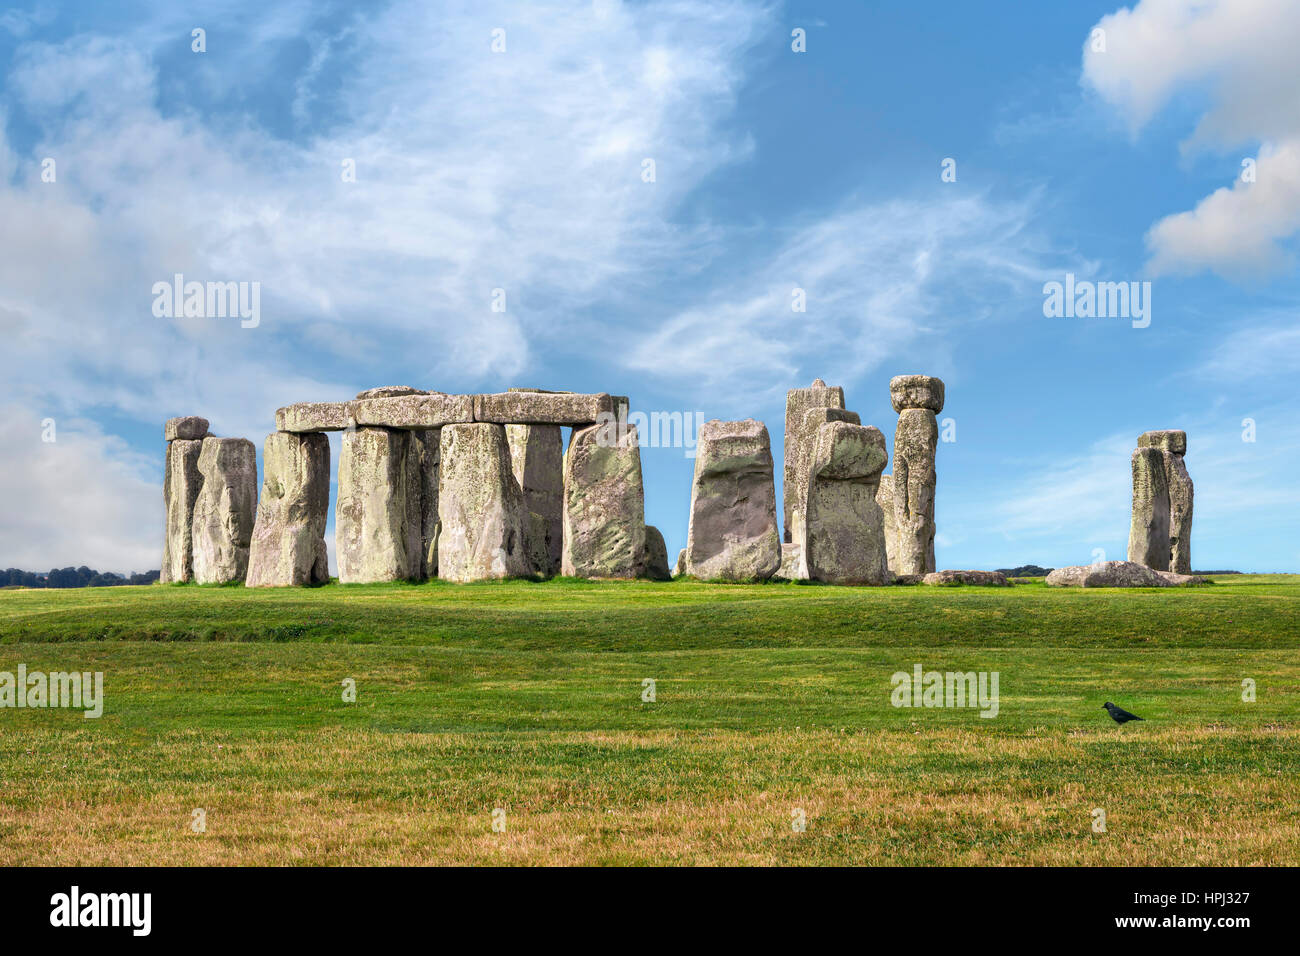 Amesbury, Wiltshire, United Kingdom - August 14, 2016: Stonehenge prehistoric megalith monument arranged in circle. - Stock Image